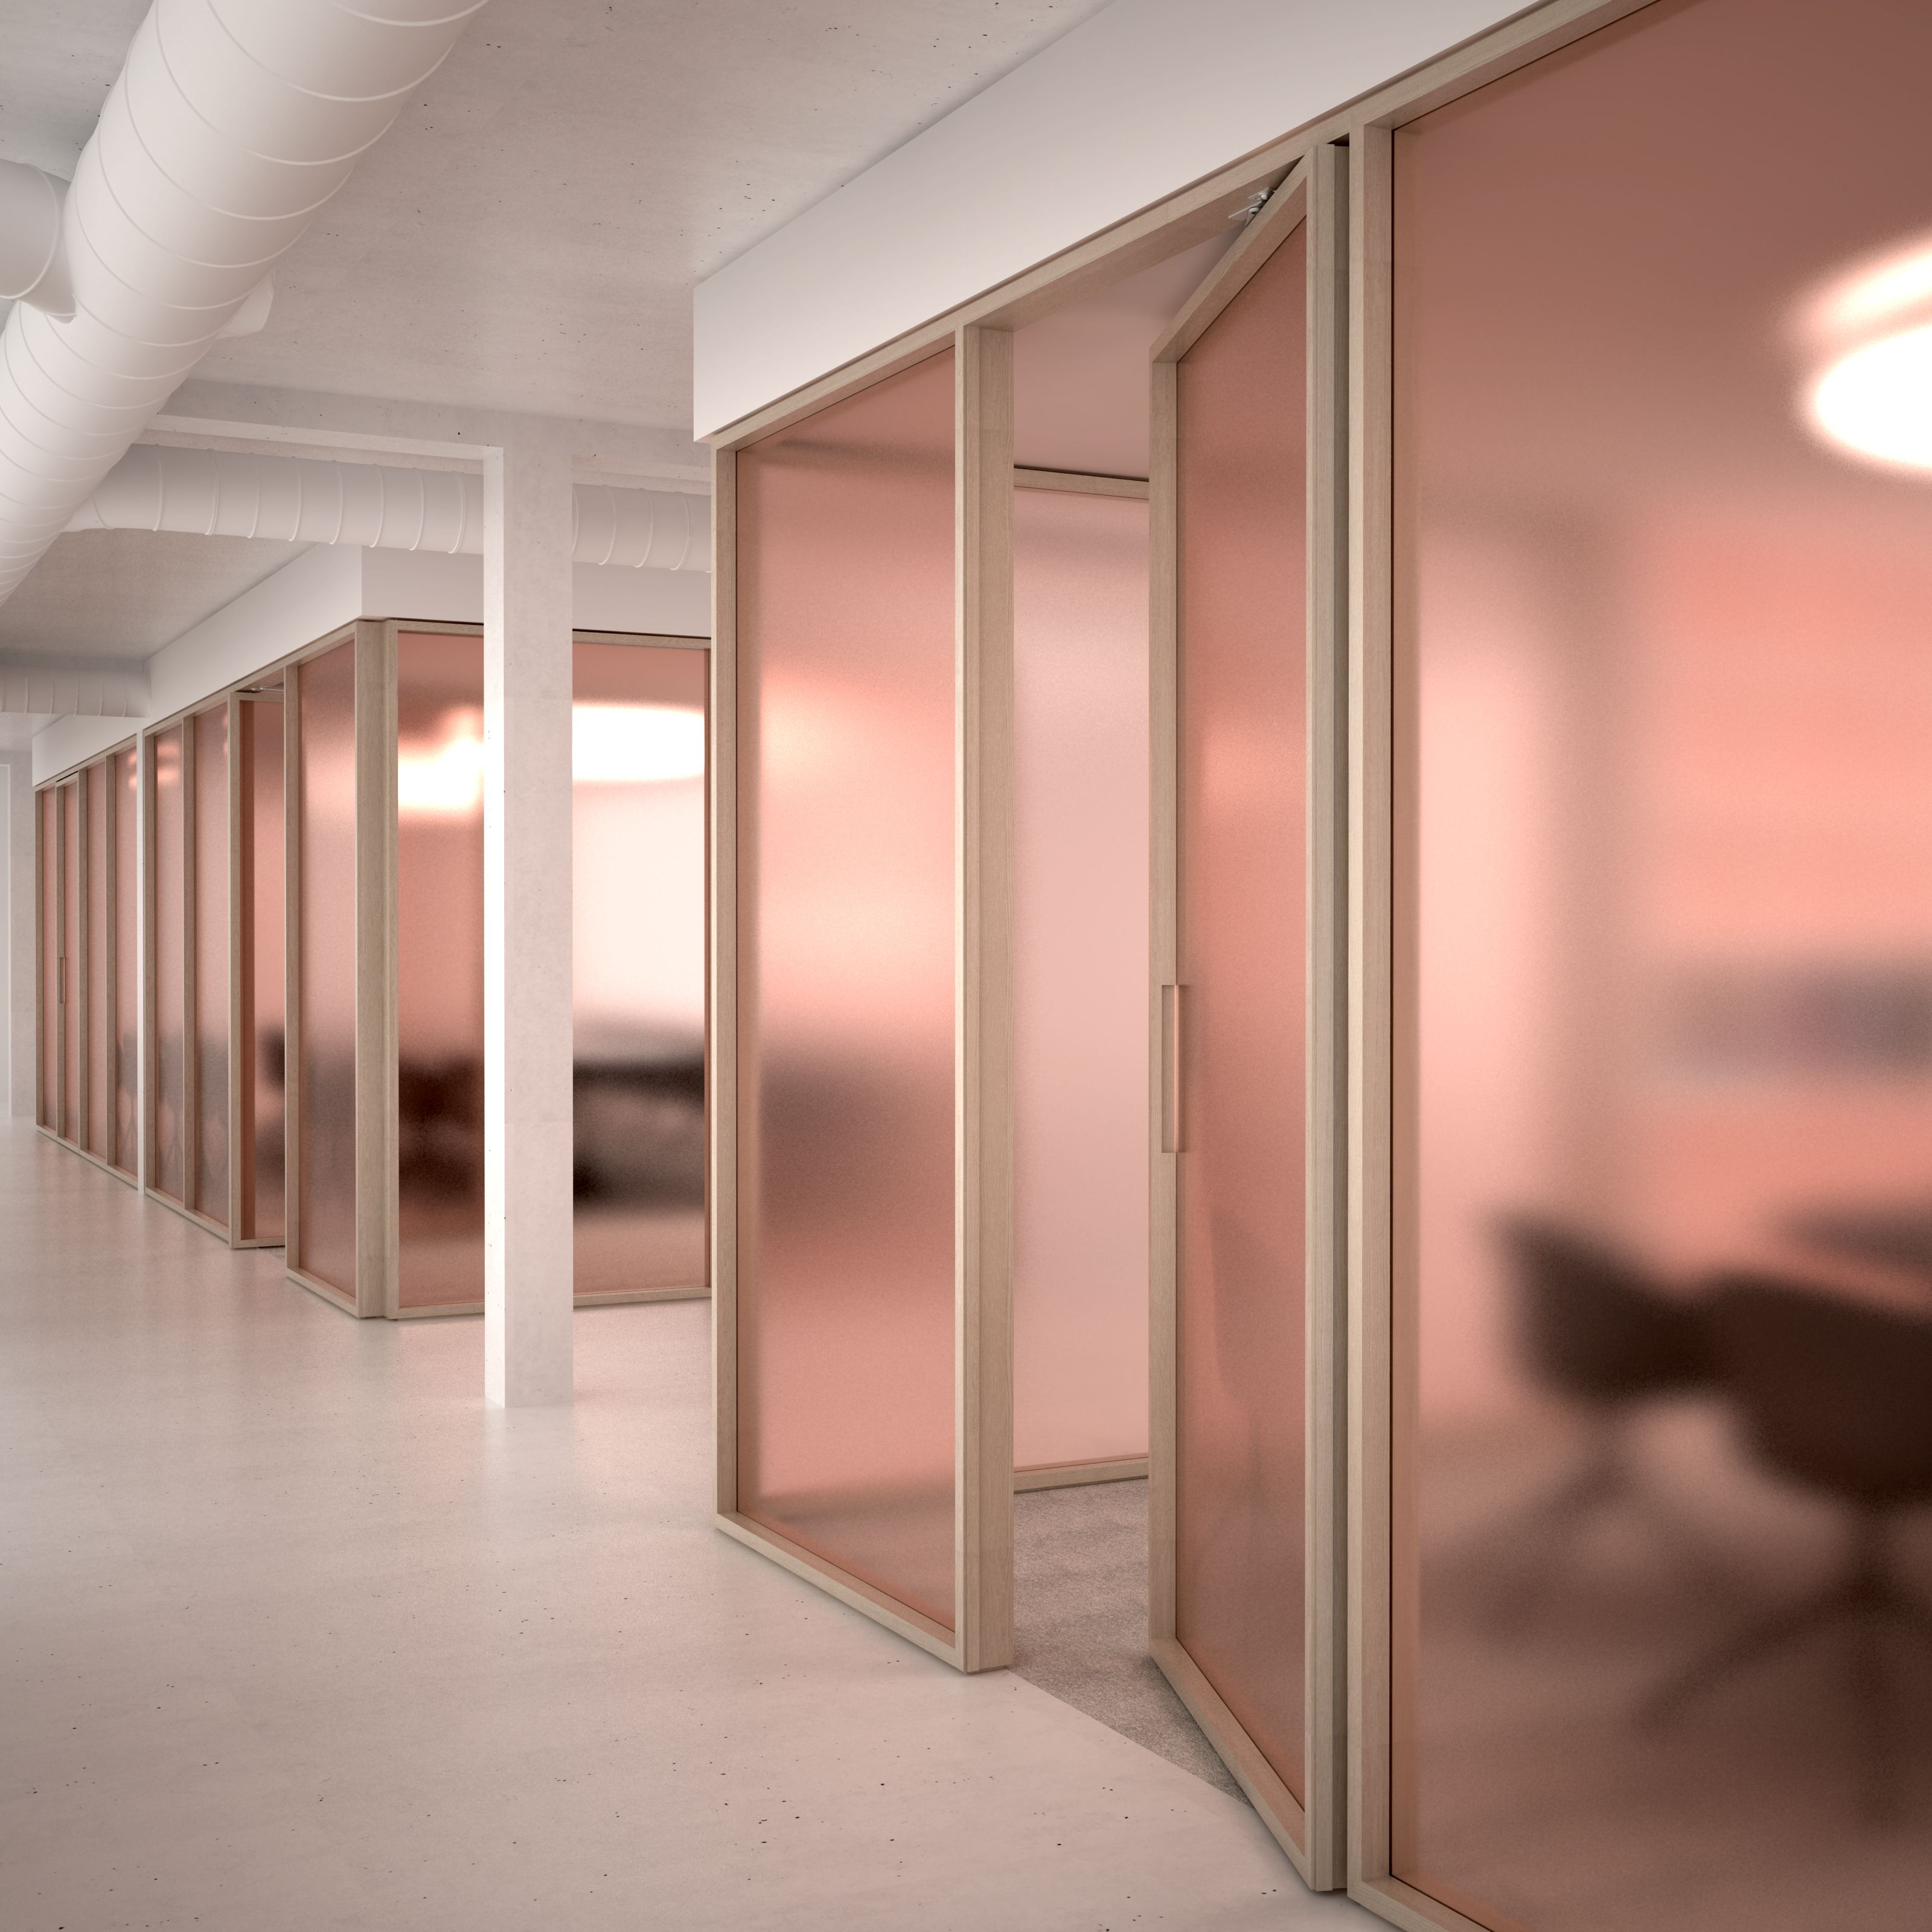 Pin 2 This Frosted Peach Coloured Glass Is A Great Way To